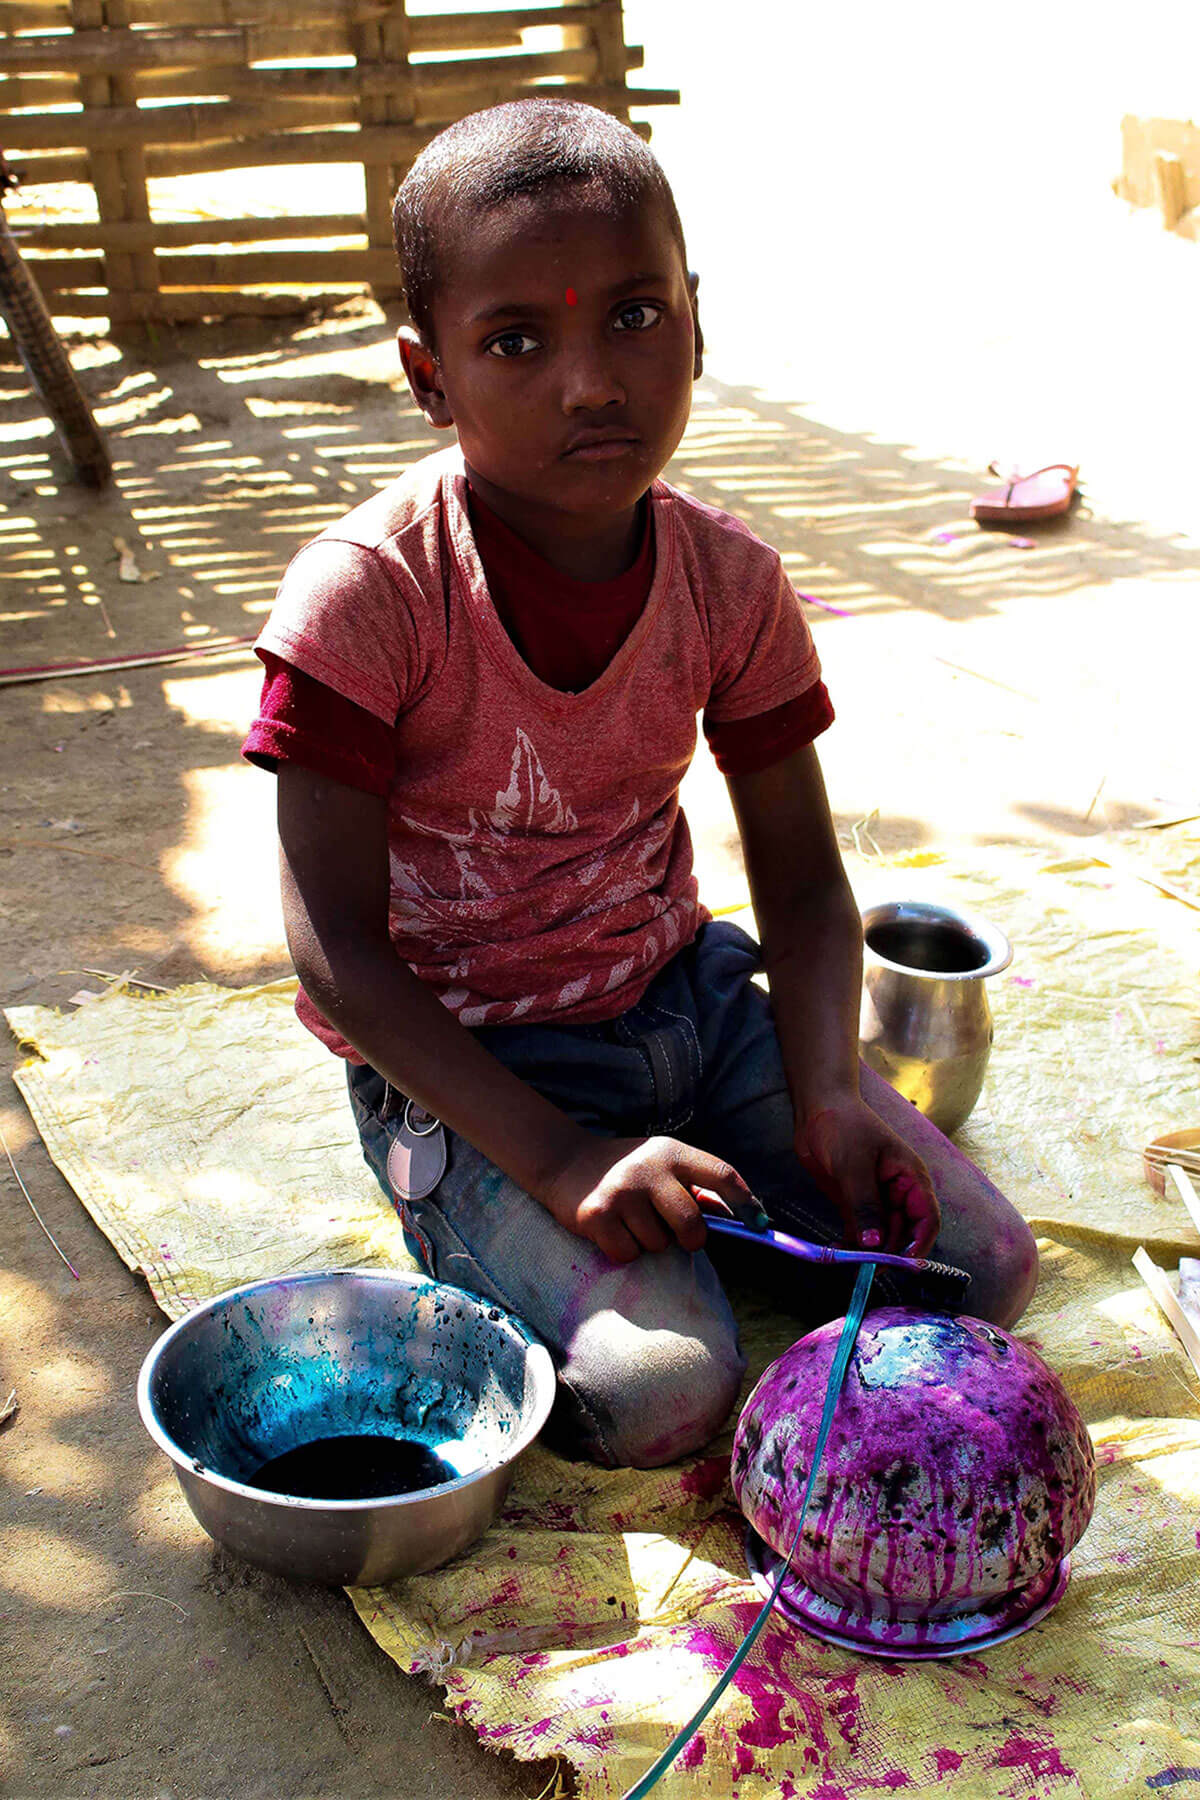 Babita Marik's another son helps his mother by painting the bamboo shoots.